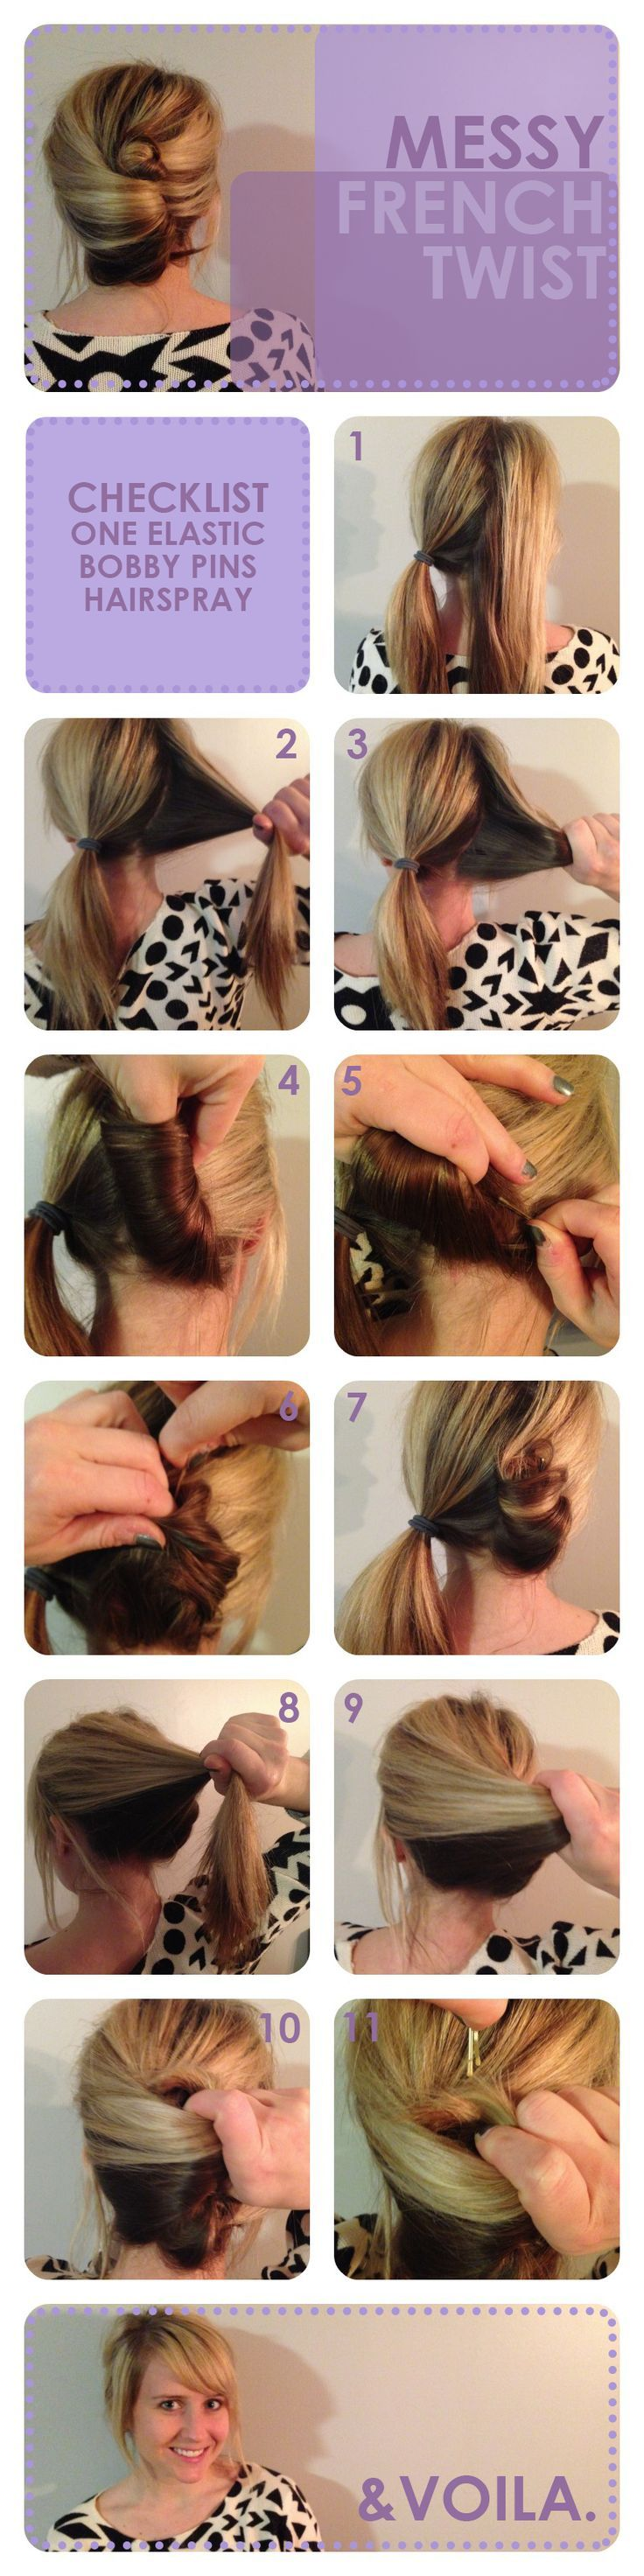 The messy french twist #hair